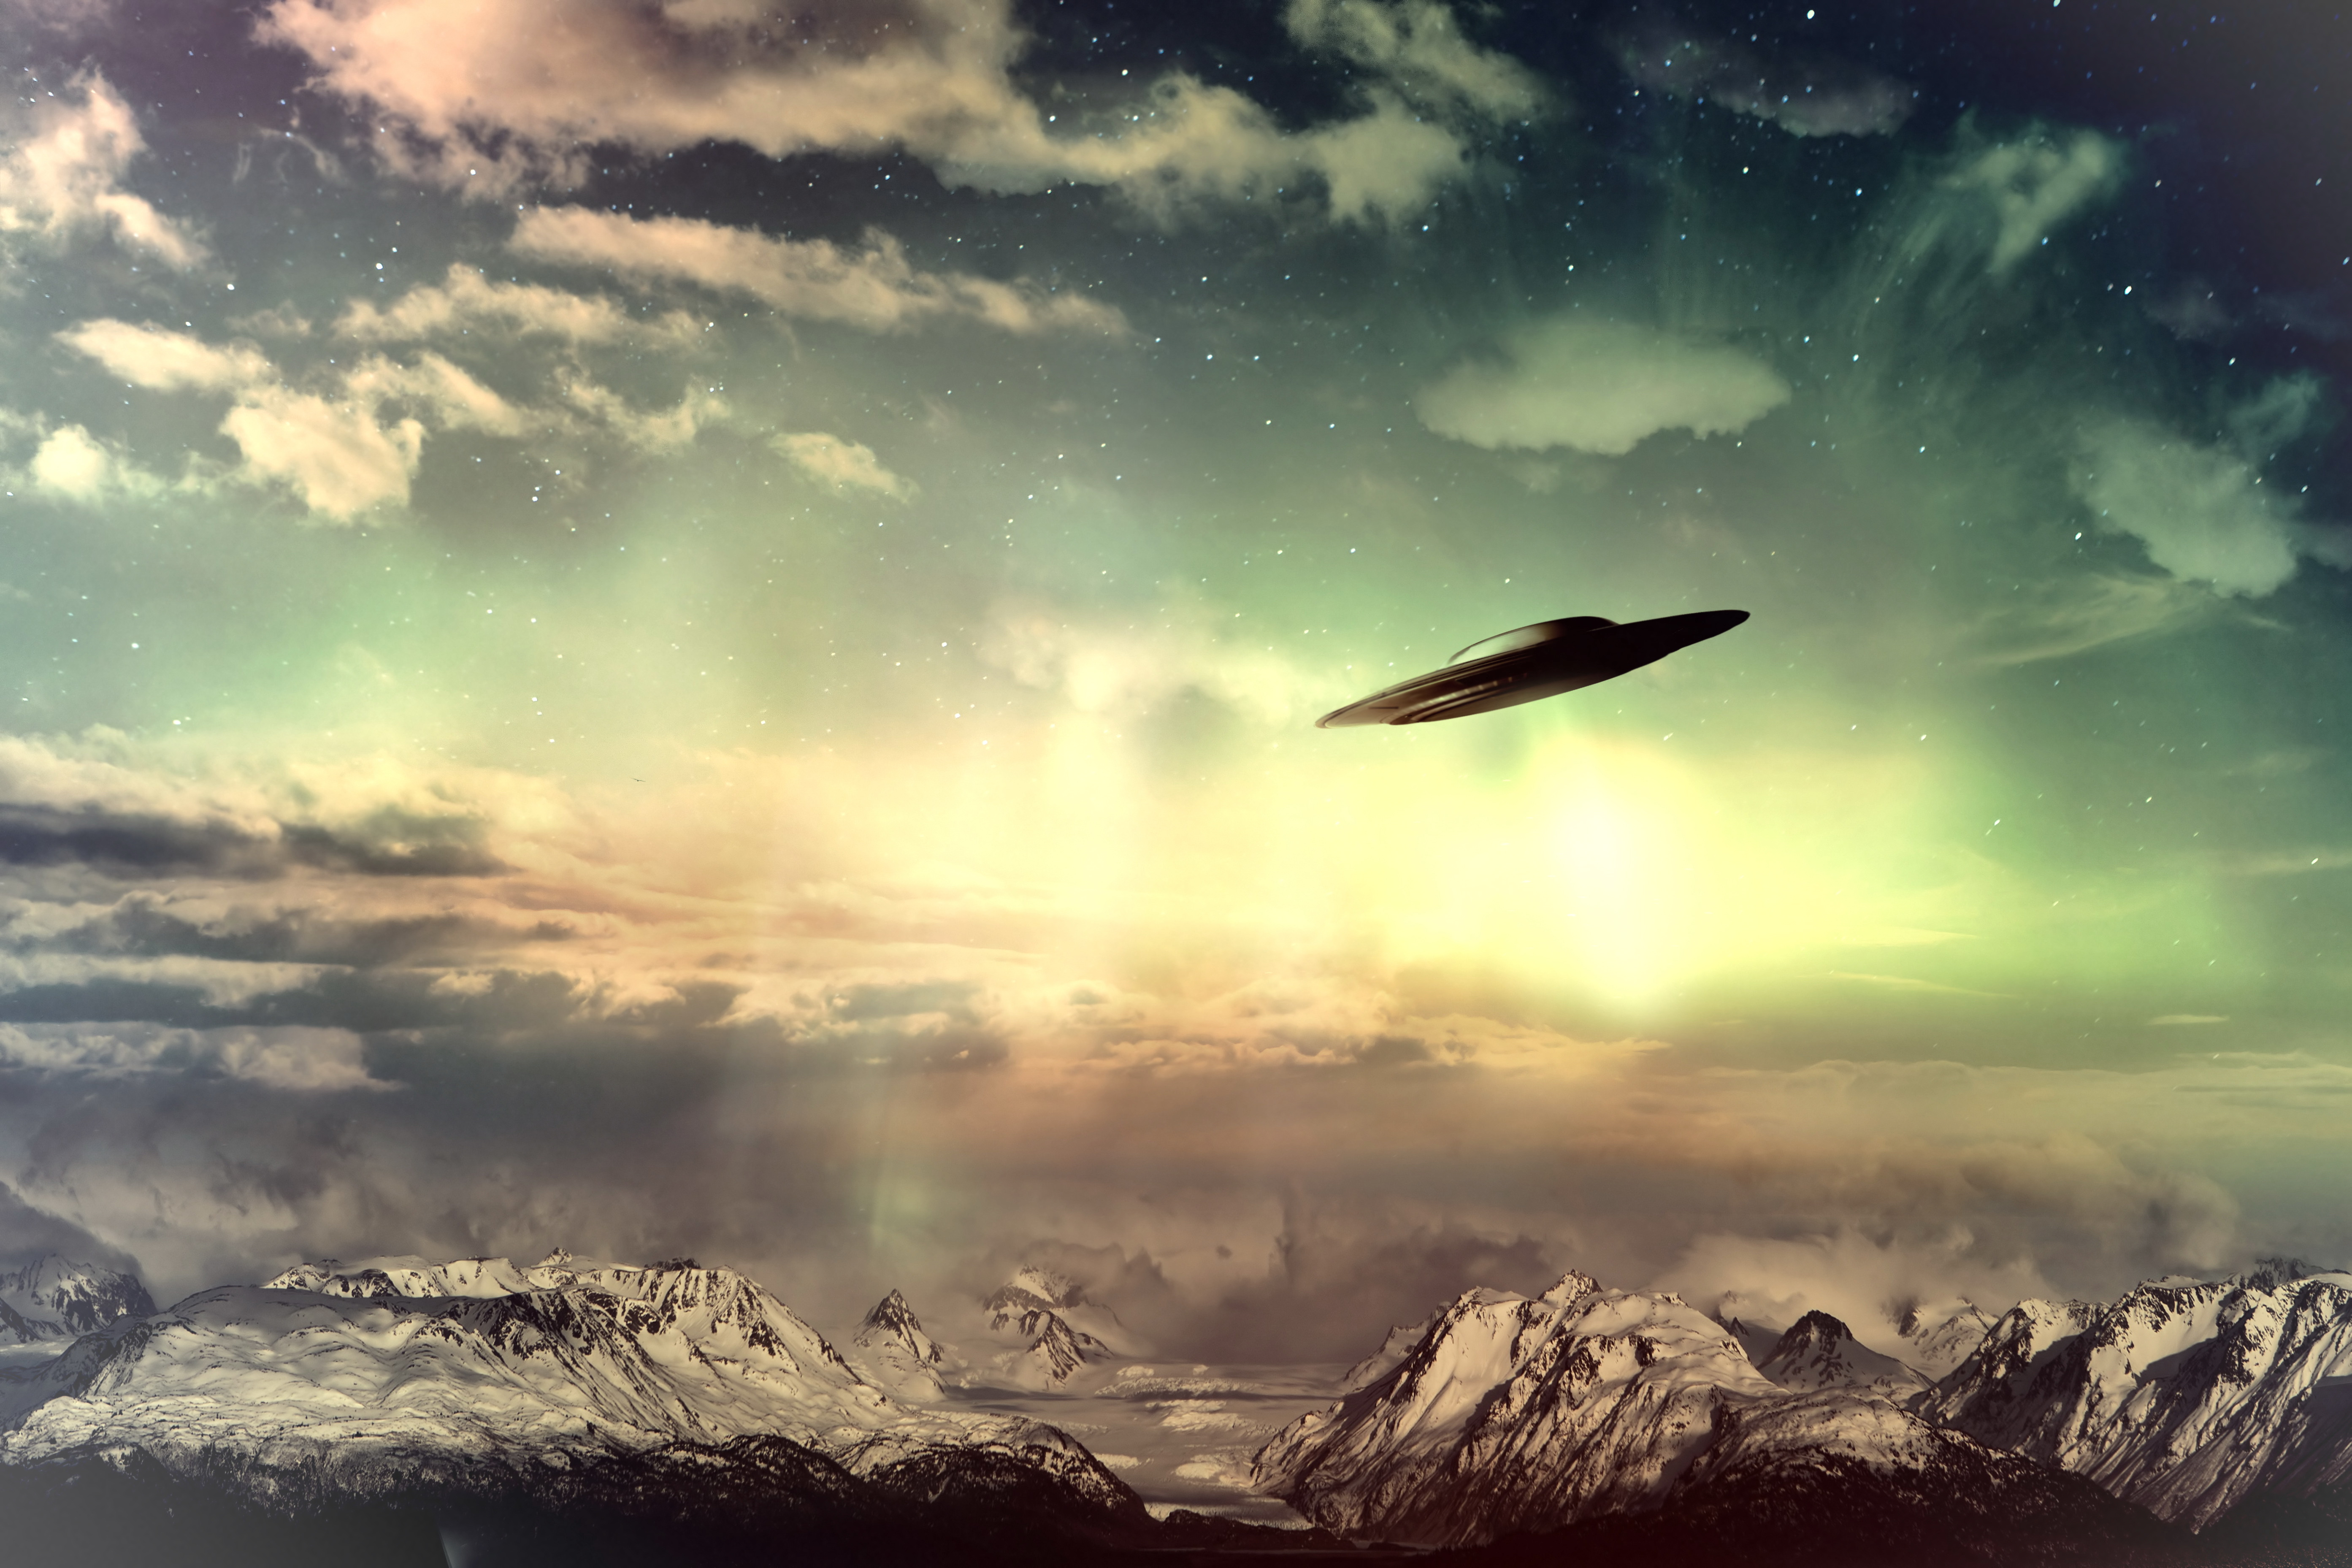 UFO In Surreal Sky 5k Retina Ultra HD Wallpaper And Background Image